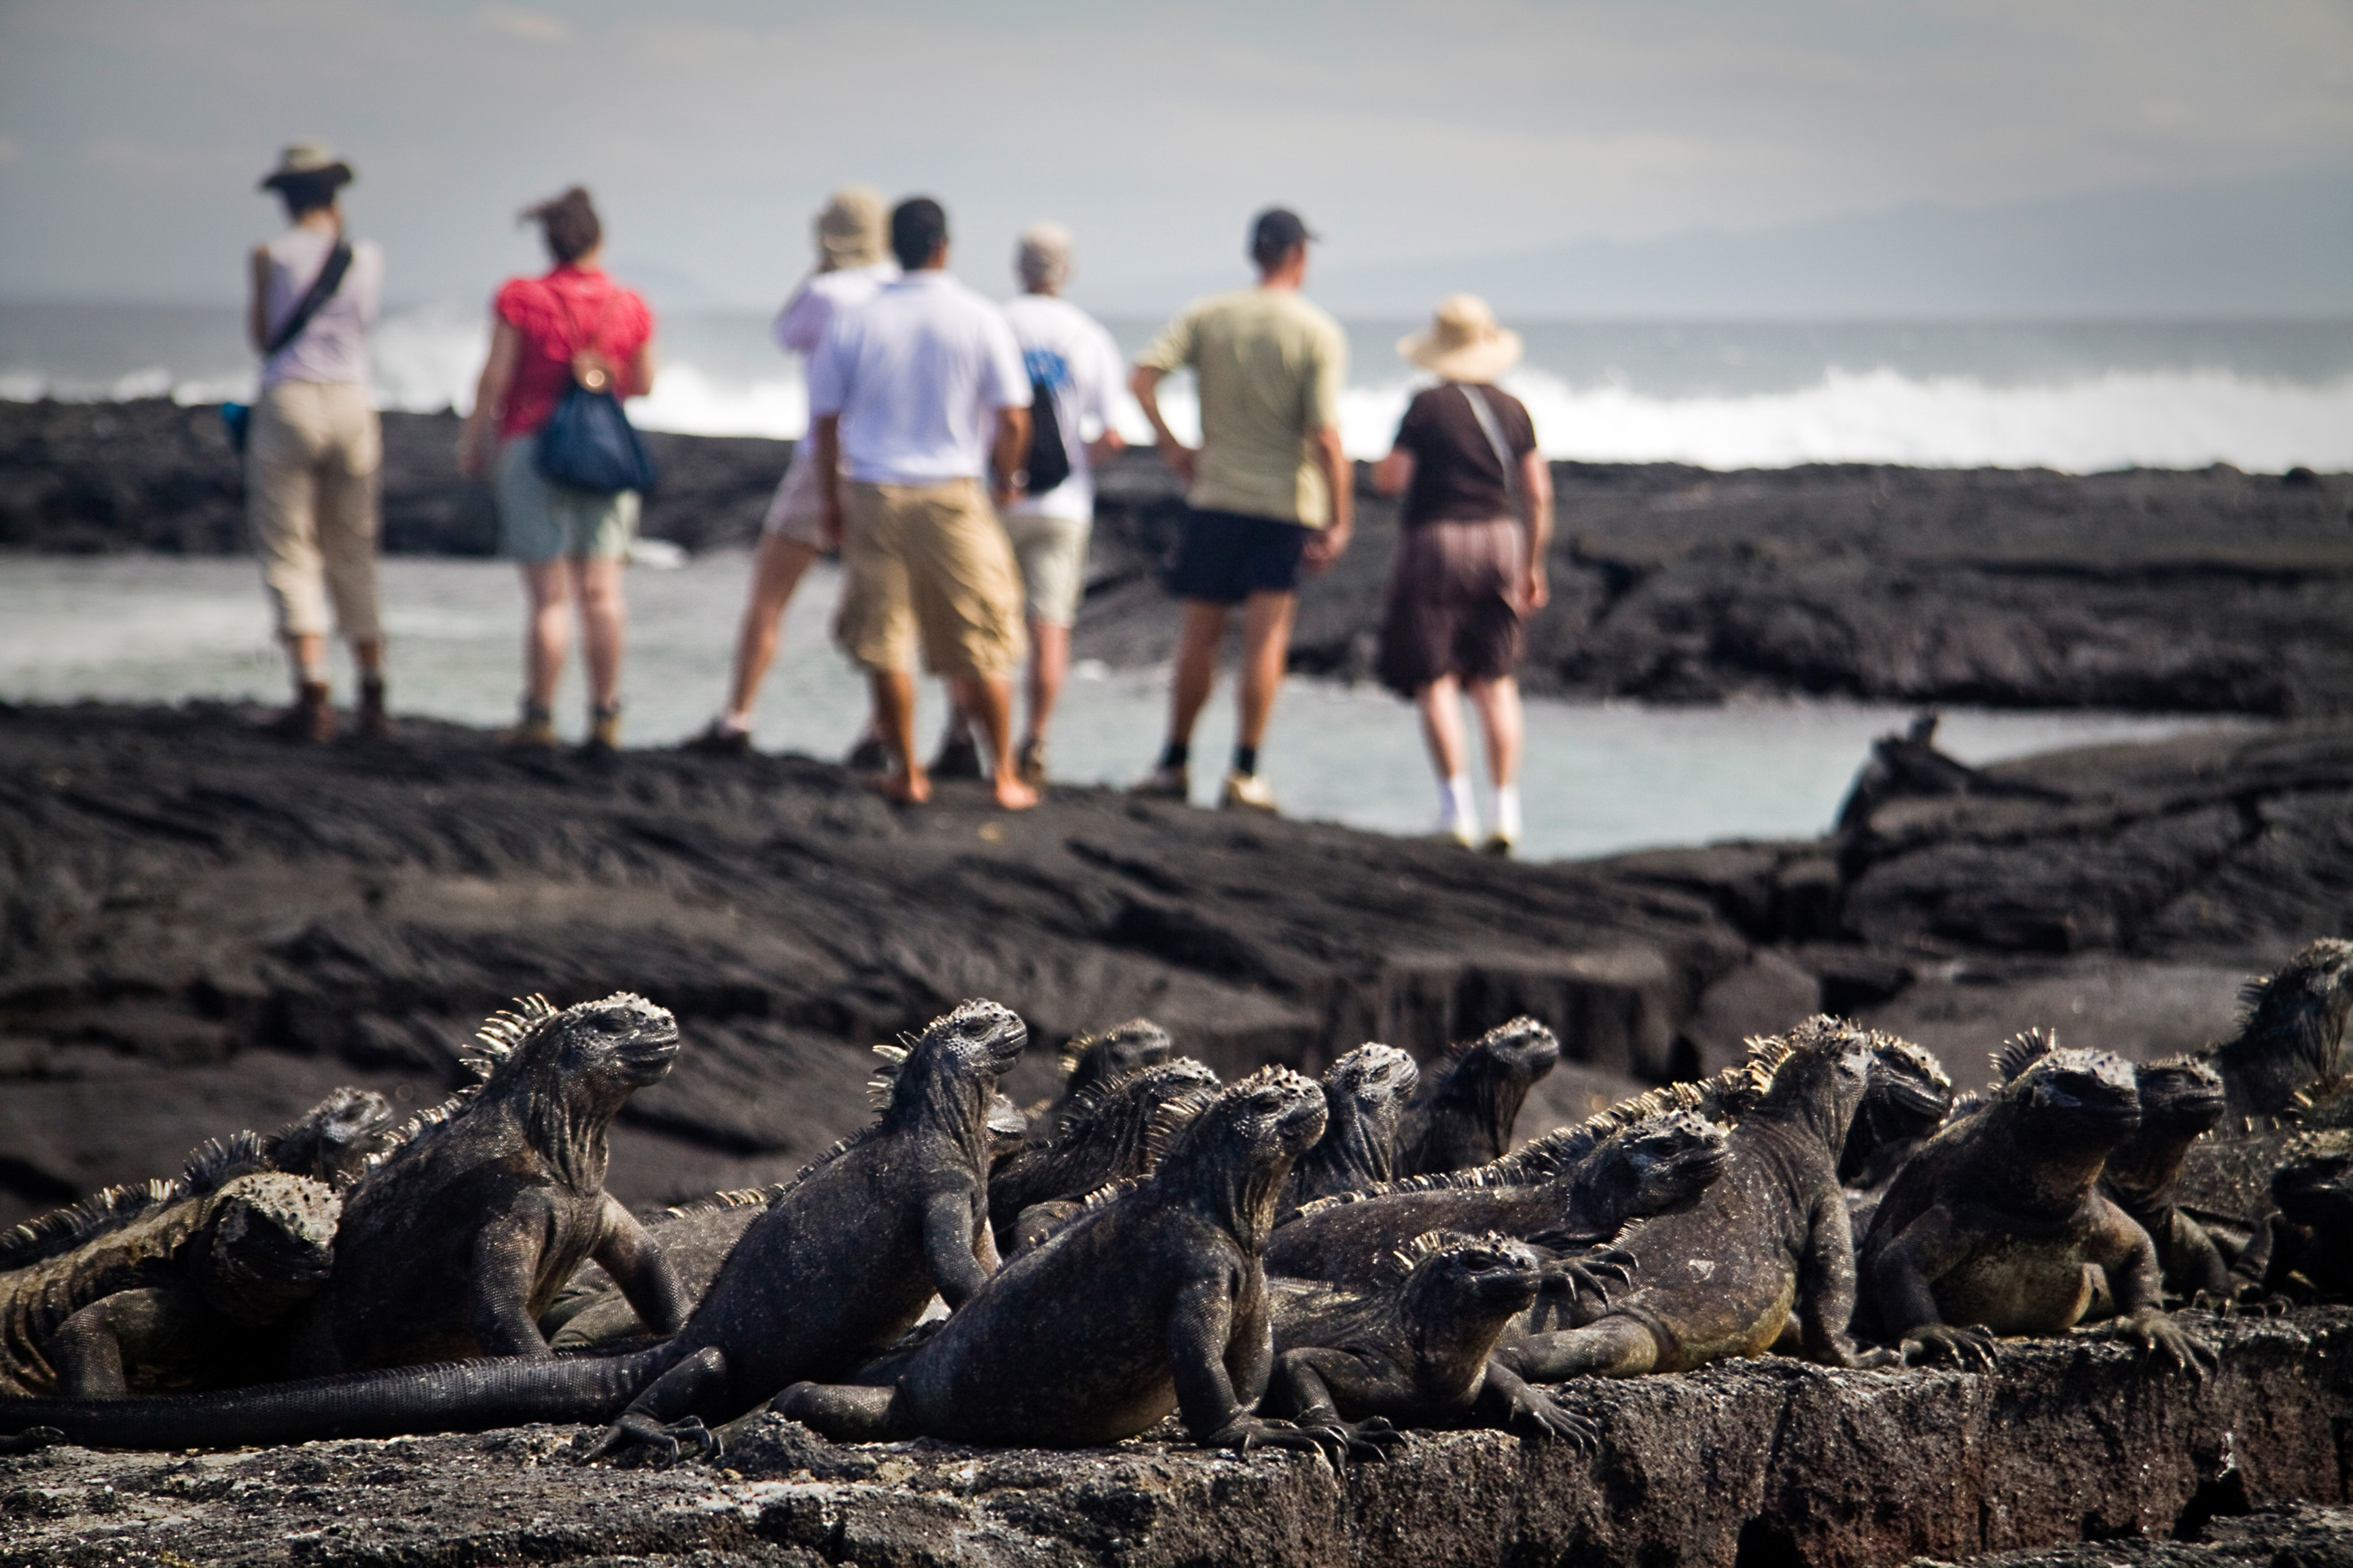 Spot incredible and unique wildlife on the Galapagos Islands